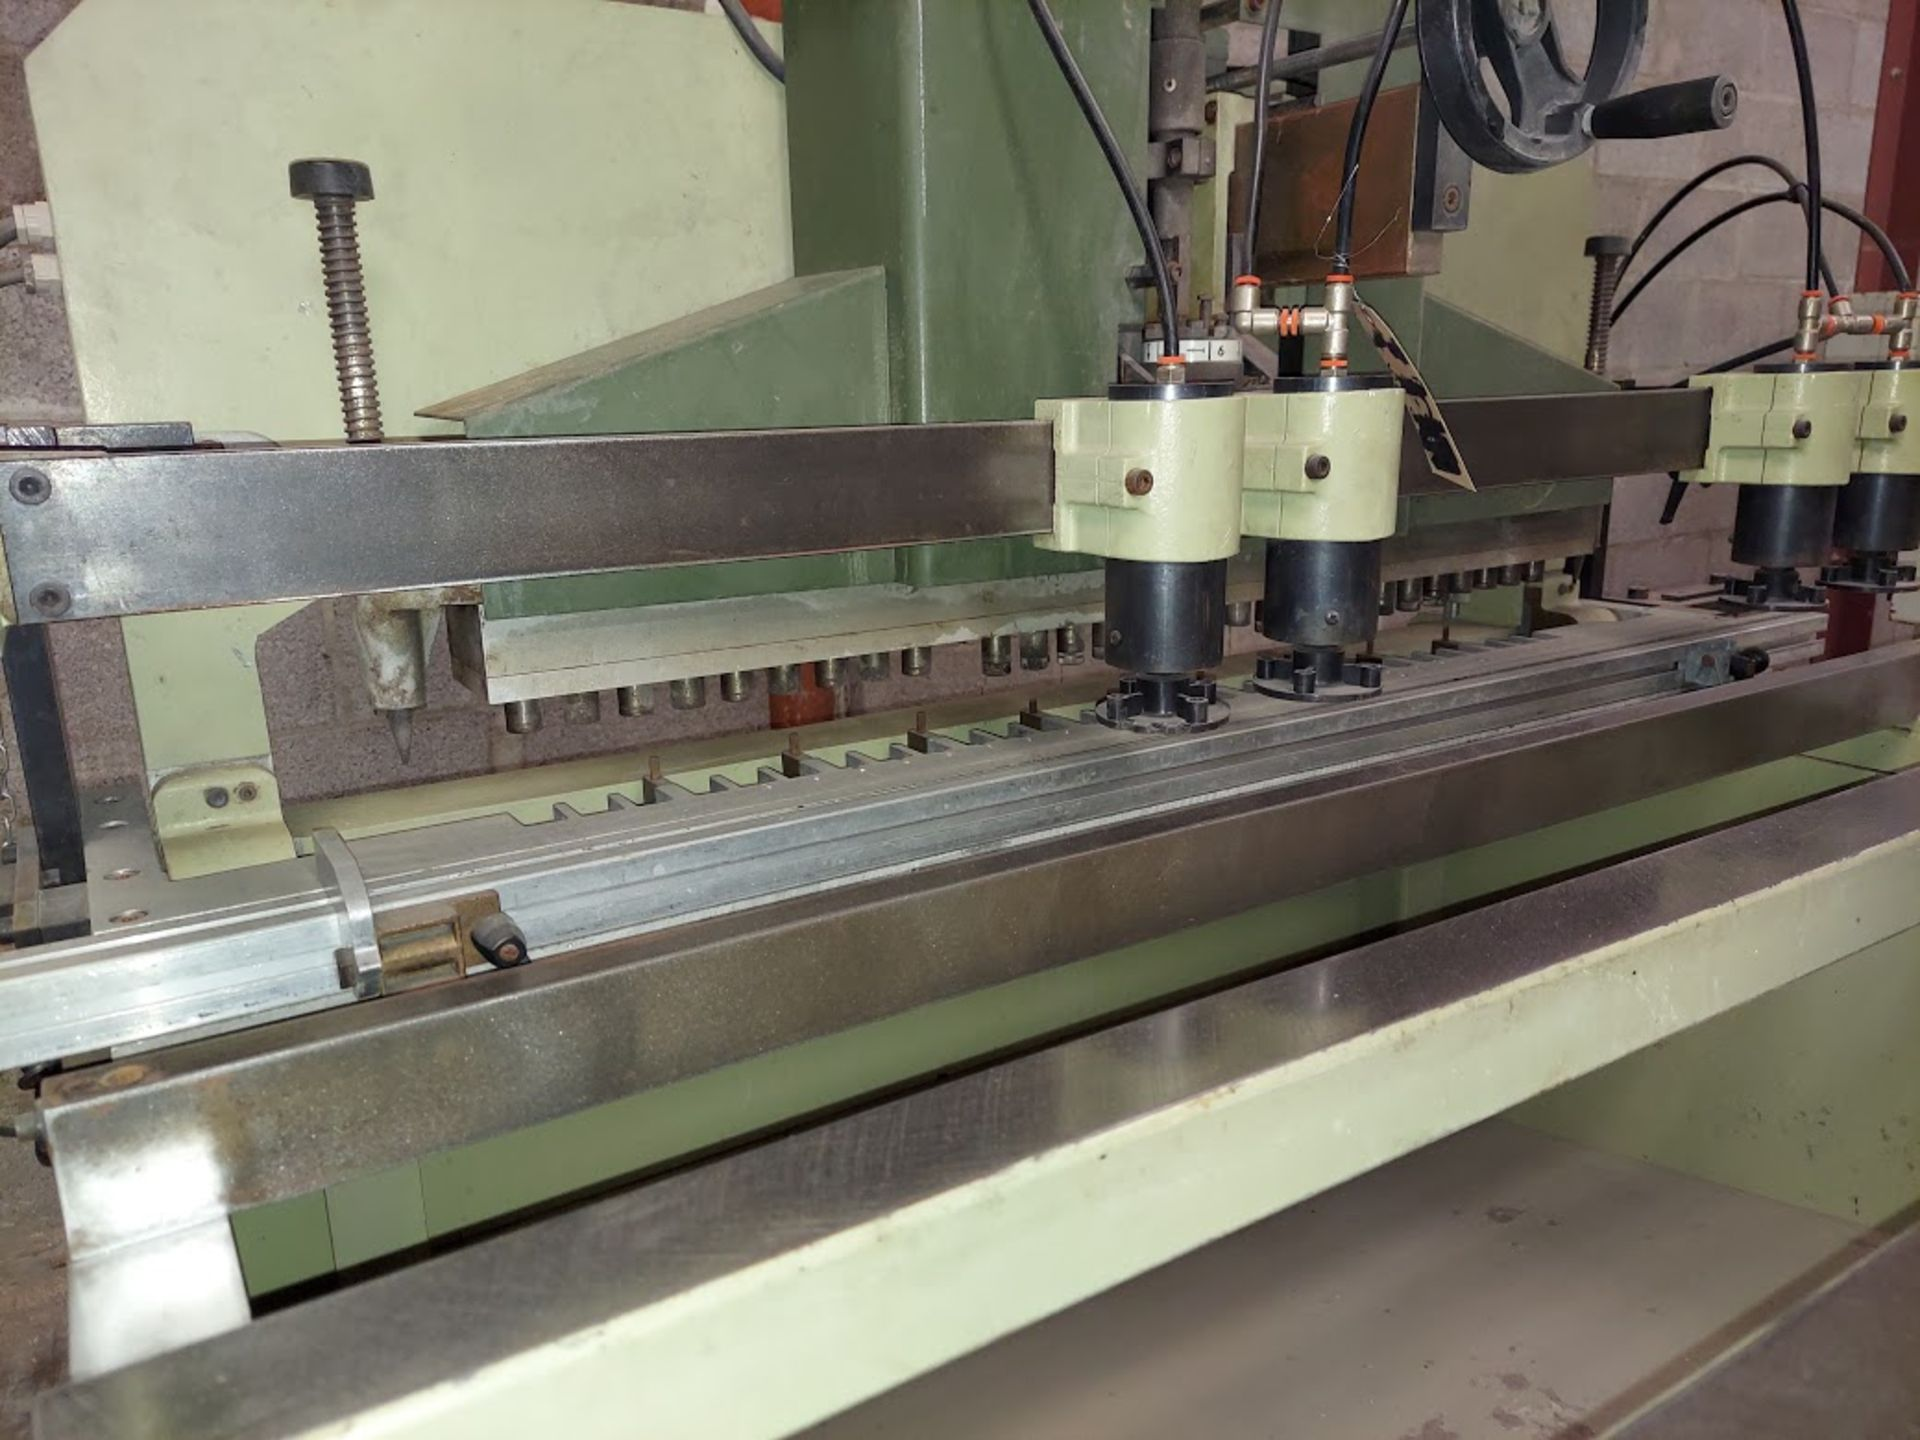 SCMI Construction Line Boring Machine, Model #MB29, 29 Spindles, 230 Volts 3 Phase - Image 6 of 6